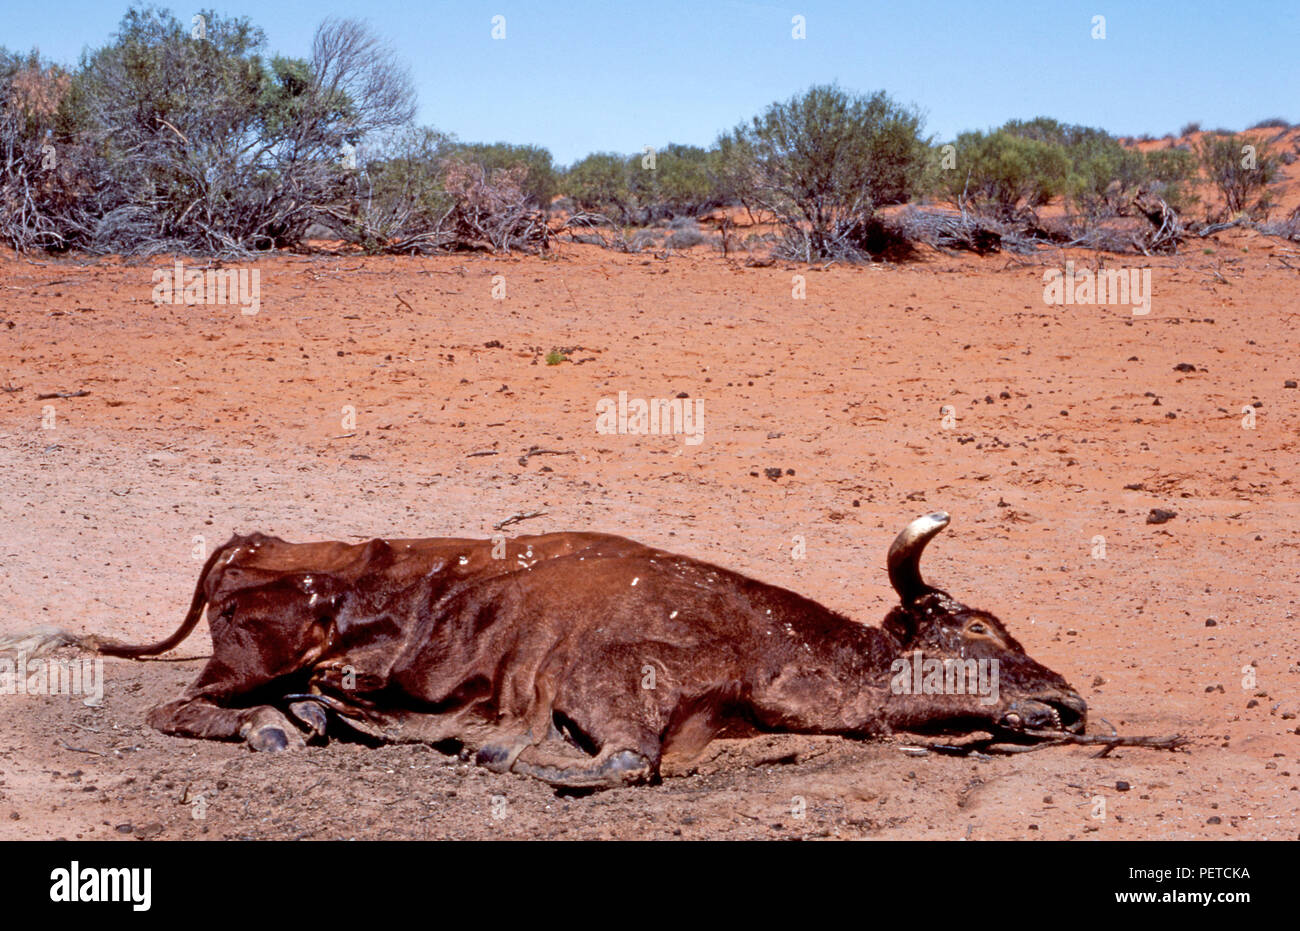 Dead livestock owing to extreme drought conditions in the Northern Territory, Australia - Stock Image